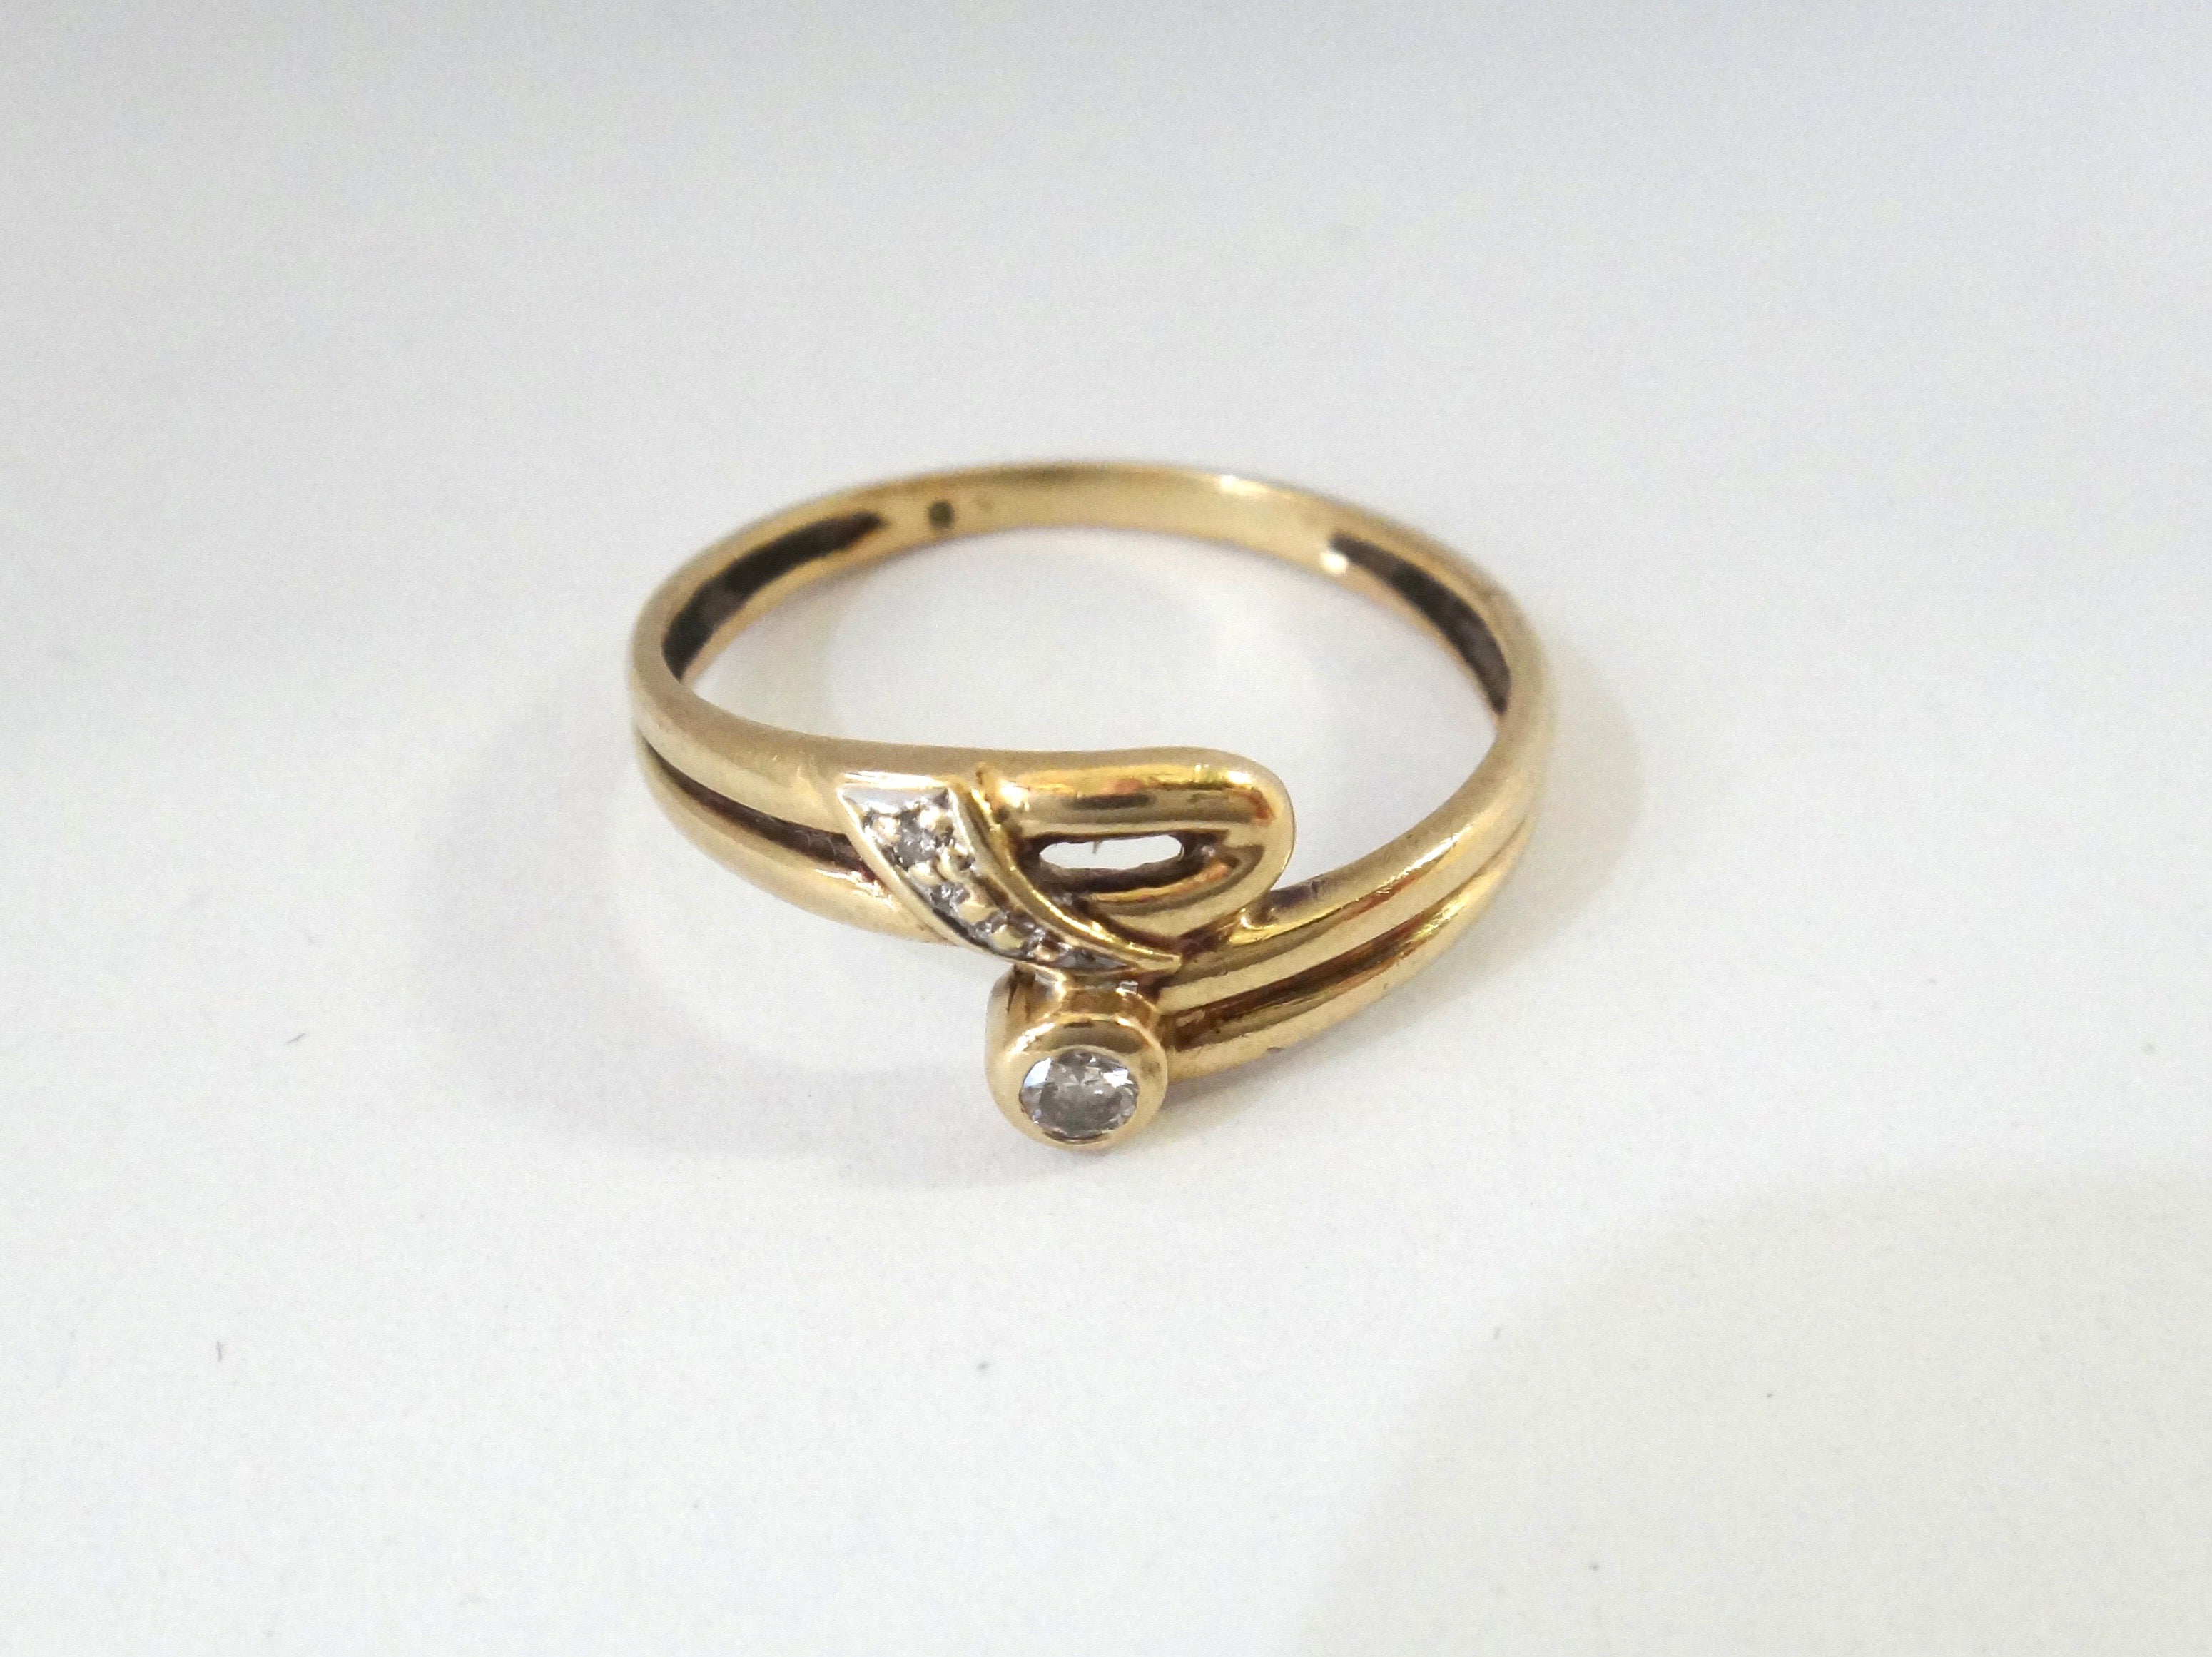 9CT GOLD & Brilliant Cut Diamond Ring